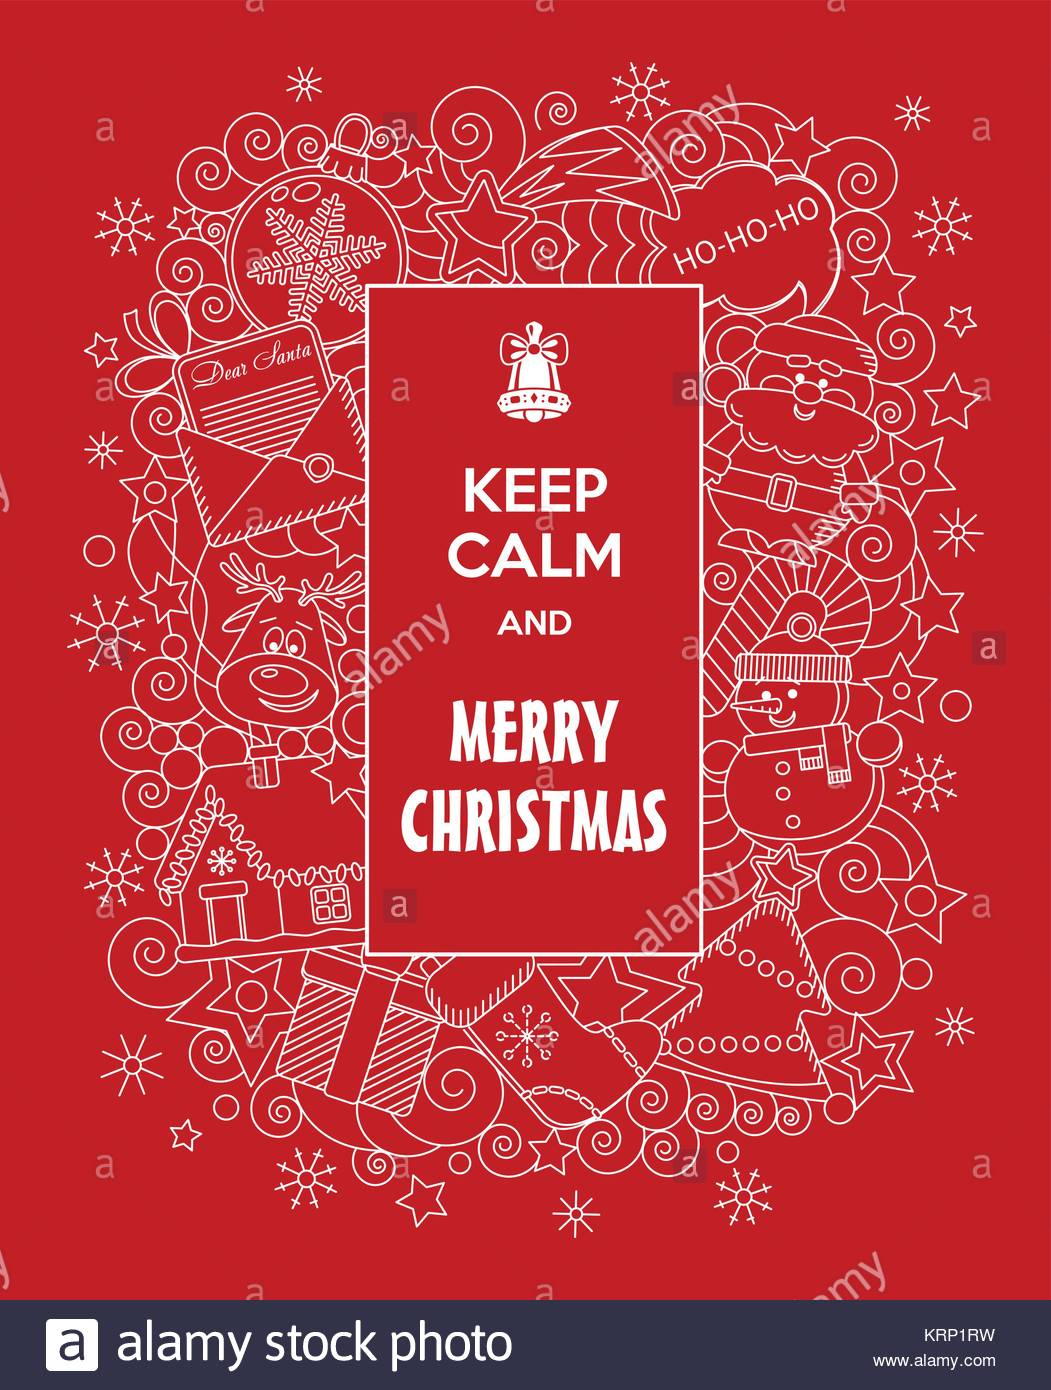 Merry Christmas! Vector doodles illustration Keep Calm and Merry ...